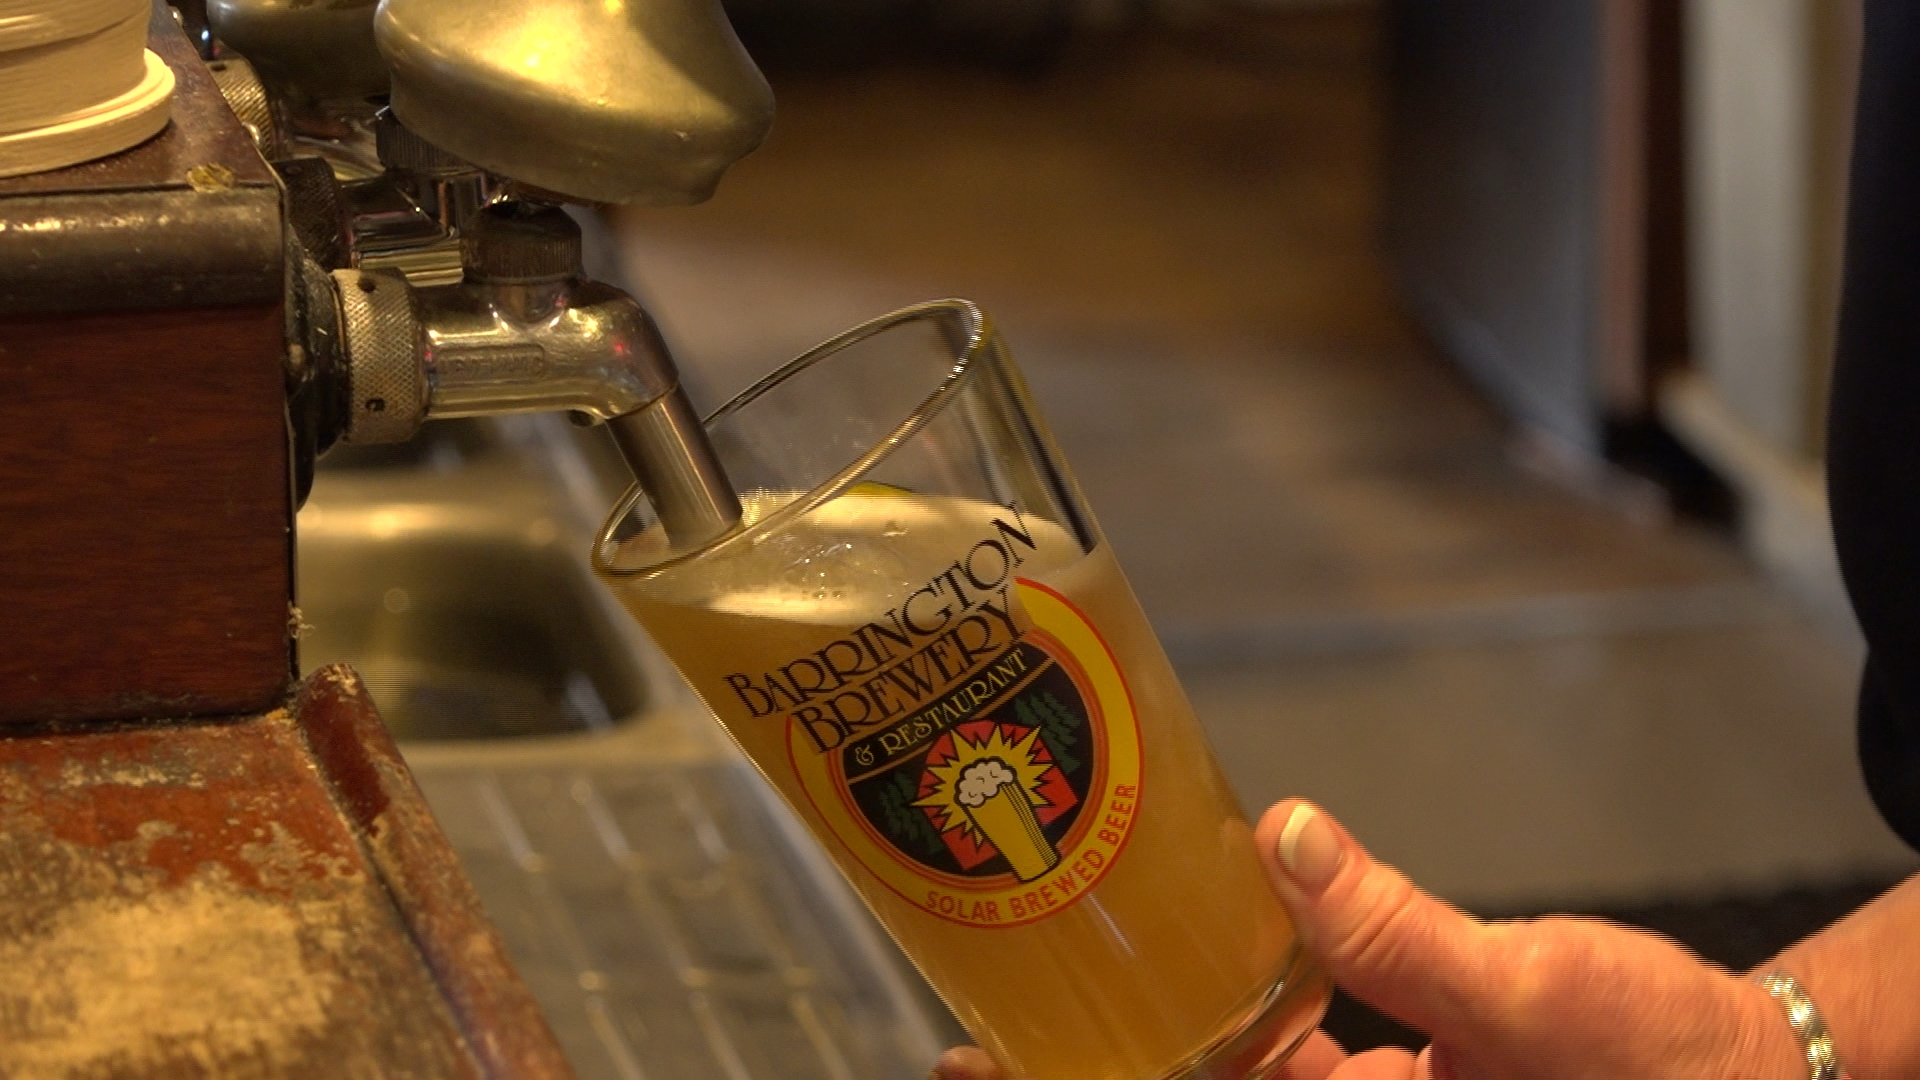 The brewers at Barrington Brewery in Great Barrington, Mass are going green and using solar power to produce a variety of tasty ales and lagers.